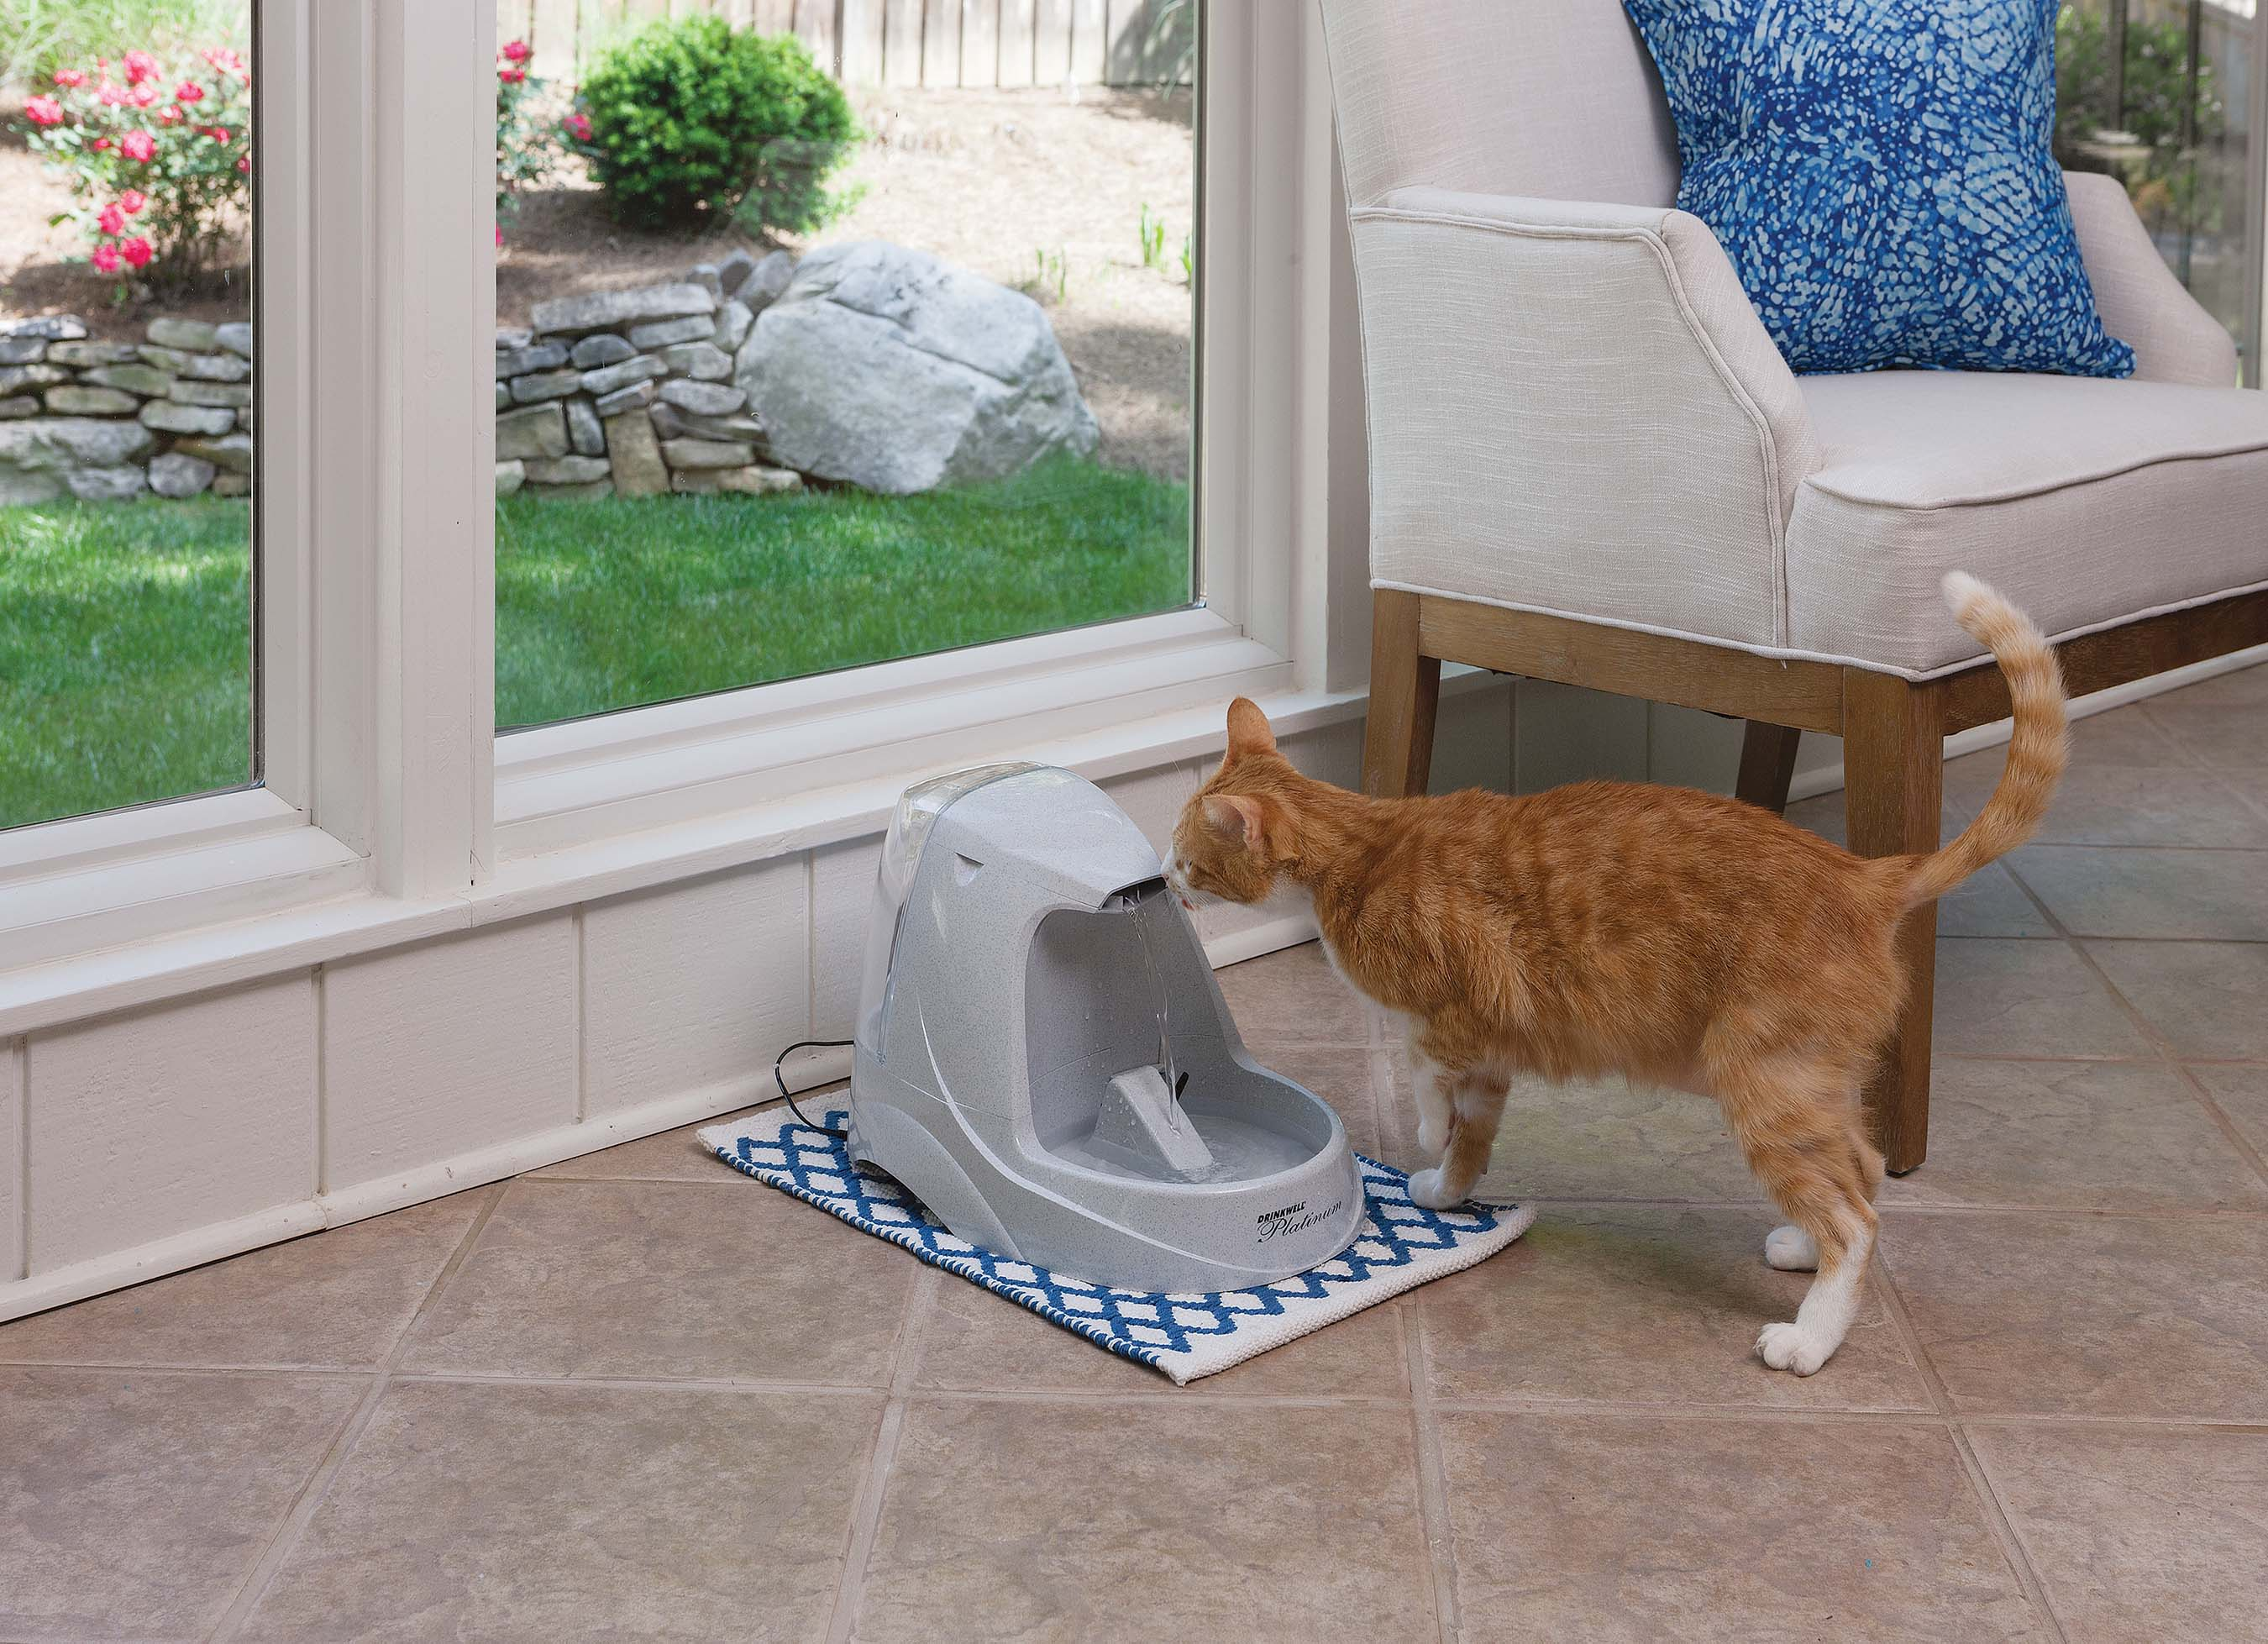 Pet fountains constantly circulate and filter the water, so it stays cleaner and tastes fresher to give cats the water they seek.